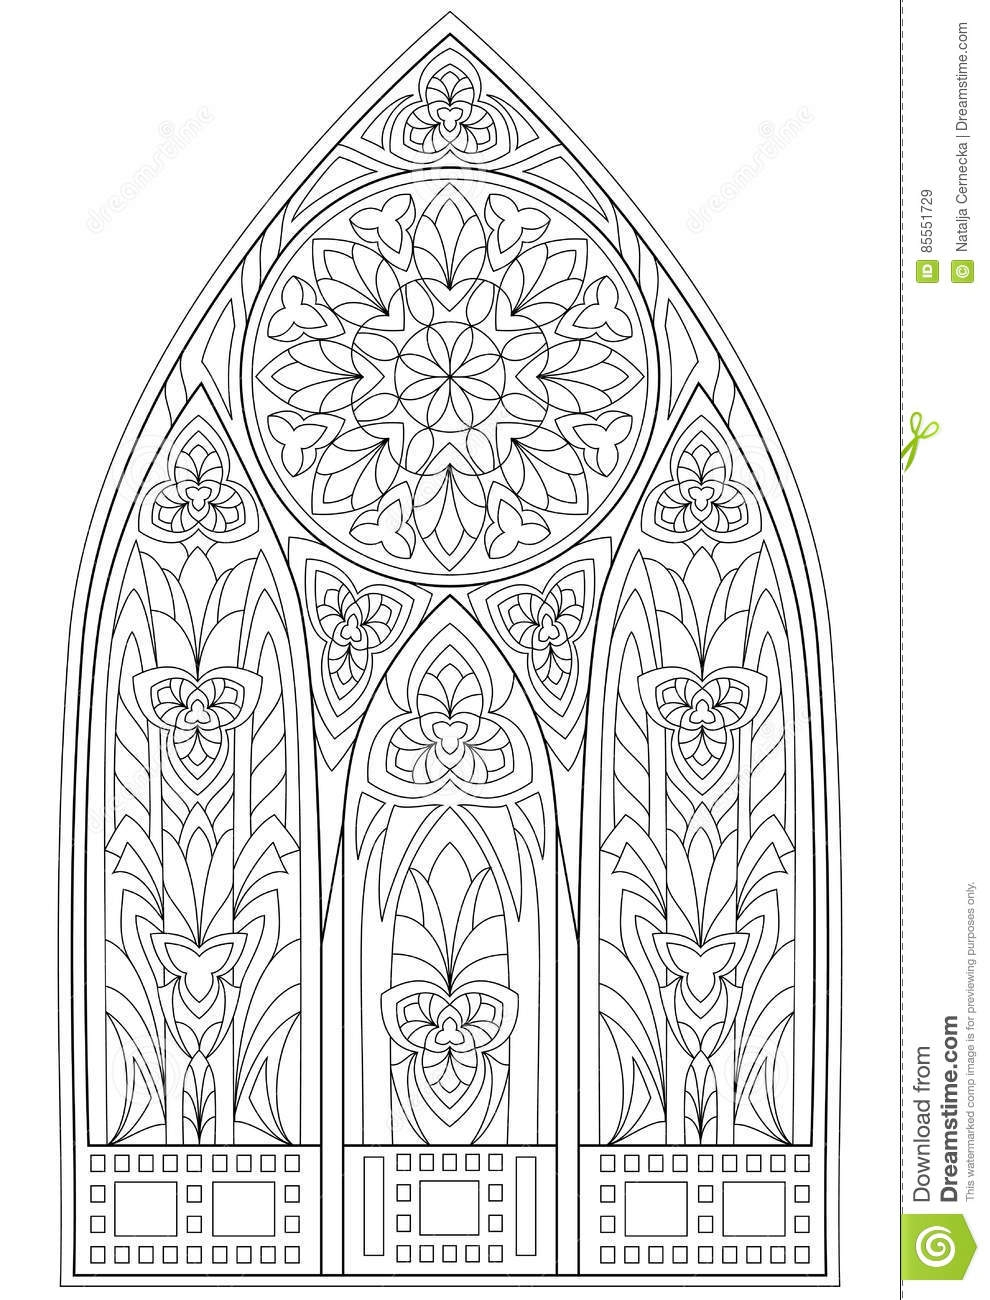 28 Gothic Coloring Pages Printable | FREE COLORING PAGES